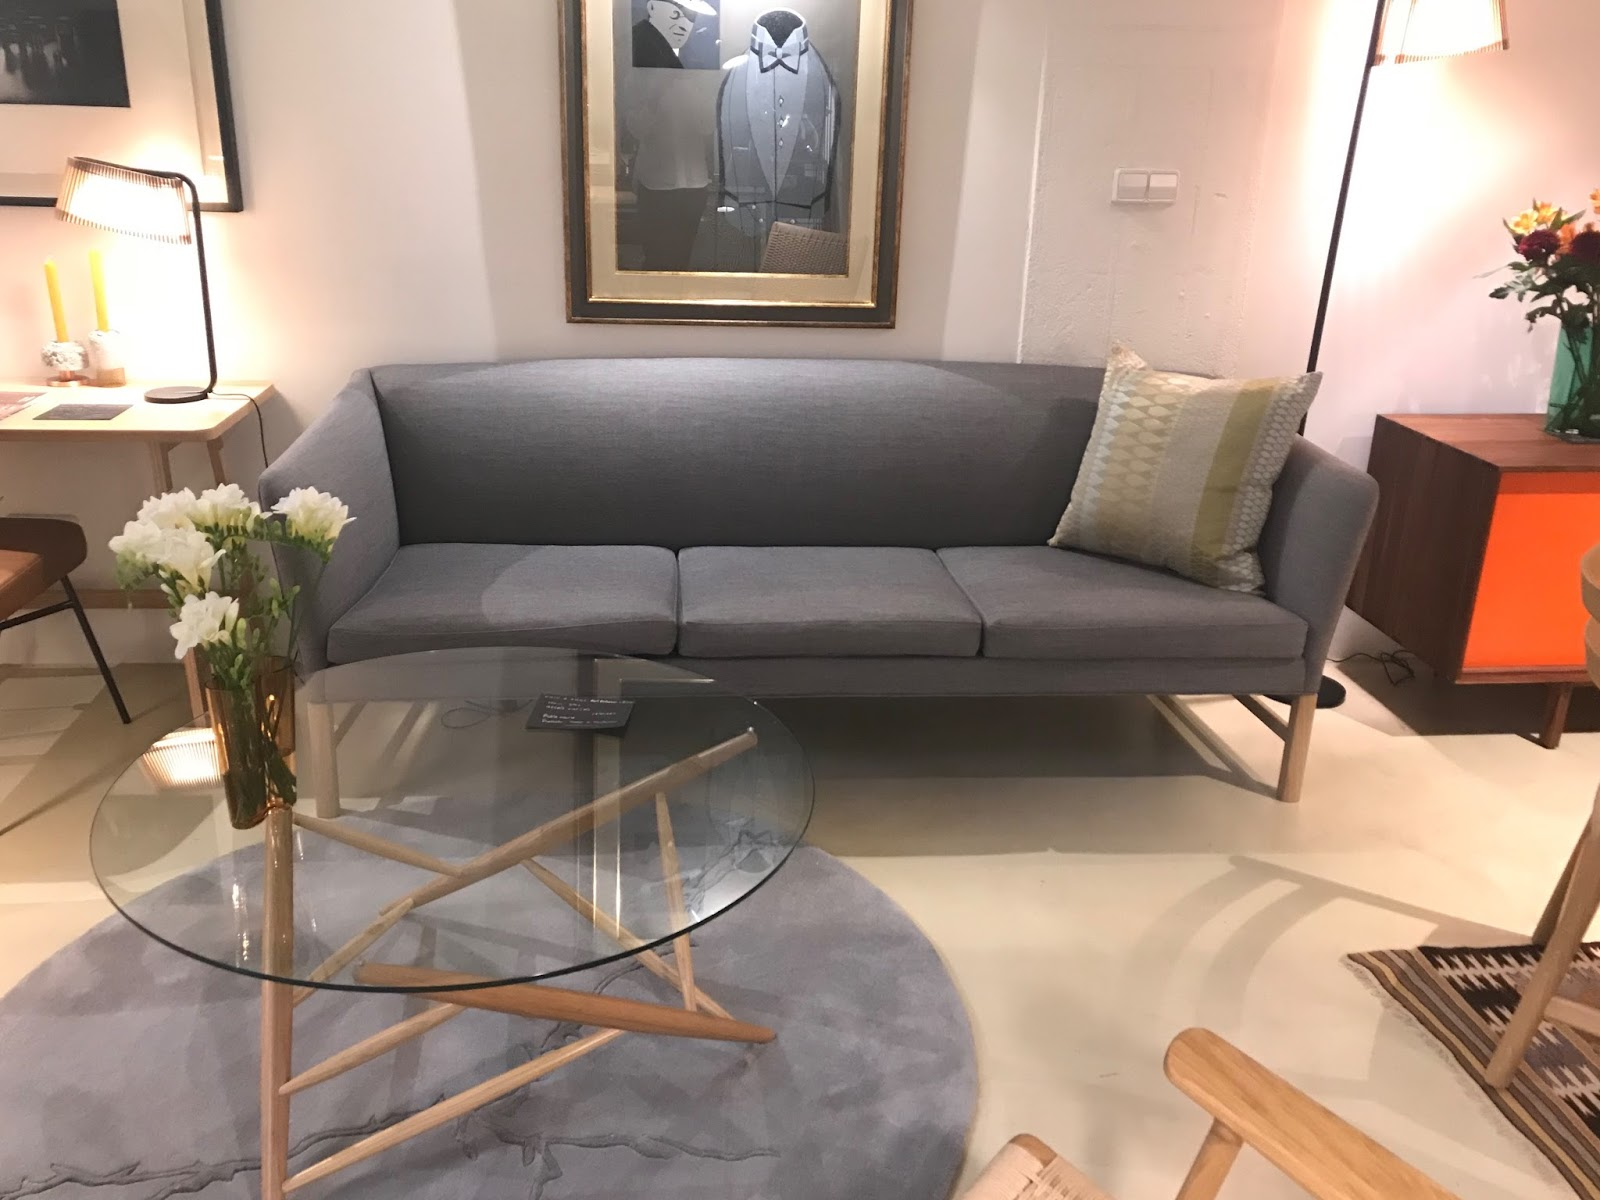 Ole Wanscher S Ow603 Sofa Is Clic Danish Design Redolent Of Both English And Oriental Furniture Traditions